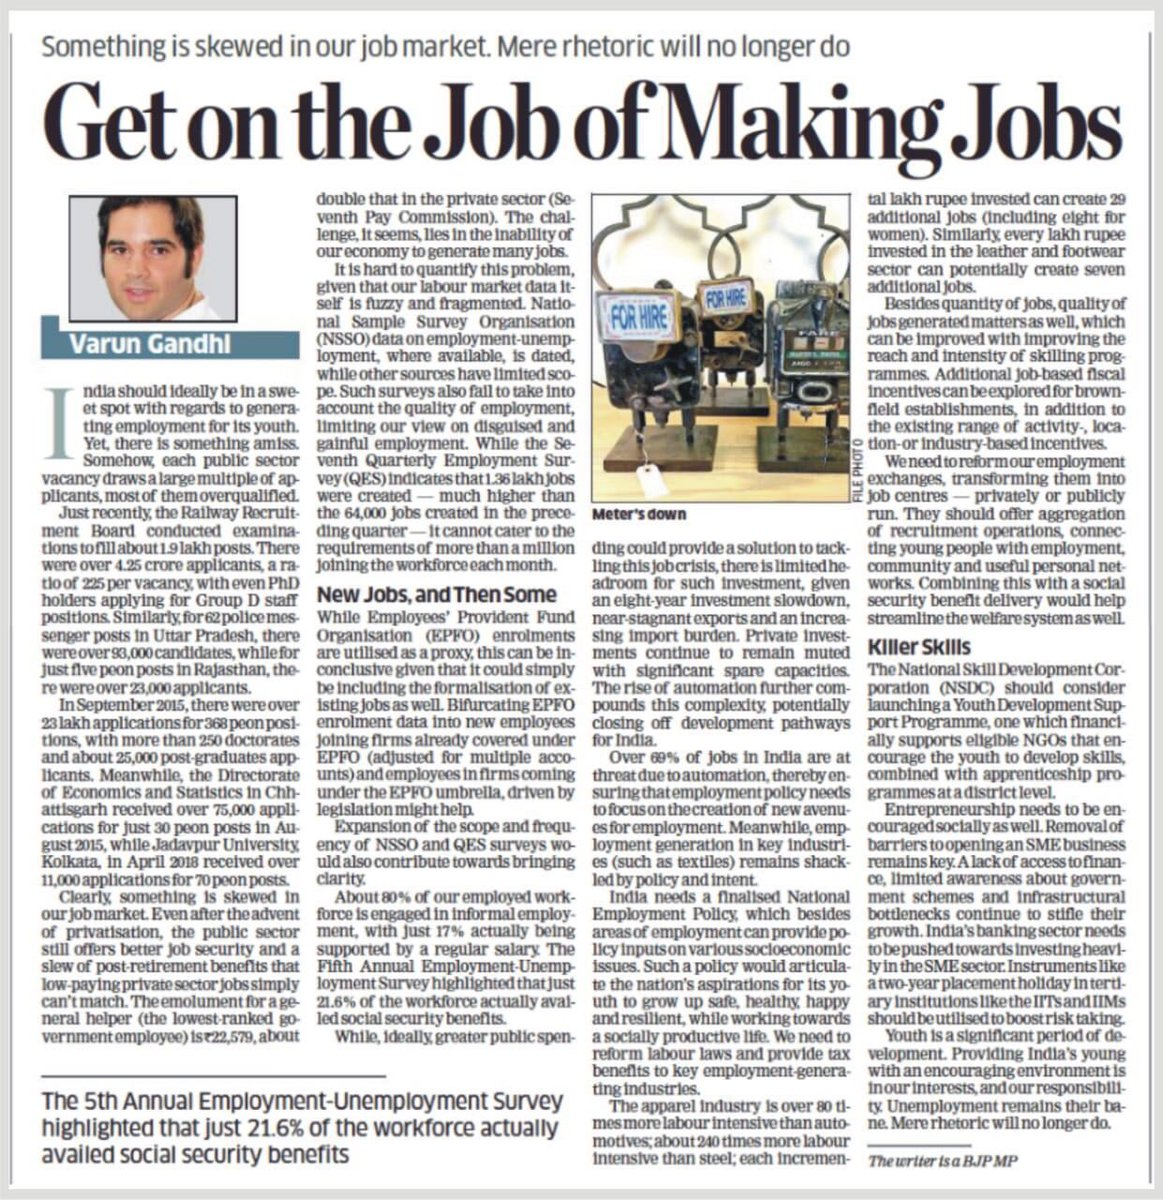 India should ideally be in a sweet spot with regards to generating employment for its youth. Yet, there is something amiss. My article in The Economic Times, today, on why providing India's young with employment is in our interests, and our responsibility.  https:// blogs.economictimes.indiatimes.com/et-commentary/ get-on-the-job-of-making-jobs/?_ga=2.45596644.119230455.1537845966-amp-9cO7m4-WU8tV-1i8Ehn5FM9CzMuk1i4KQeguLI17foBguOKmSI7woThZjHxyr5vc &nbsp; … <br>http://pic.twitter.com/JitWYzYnKR